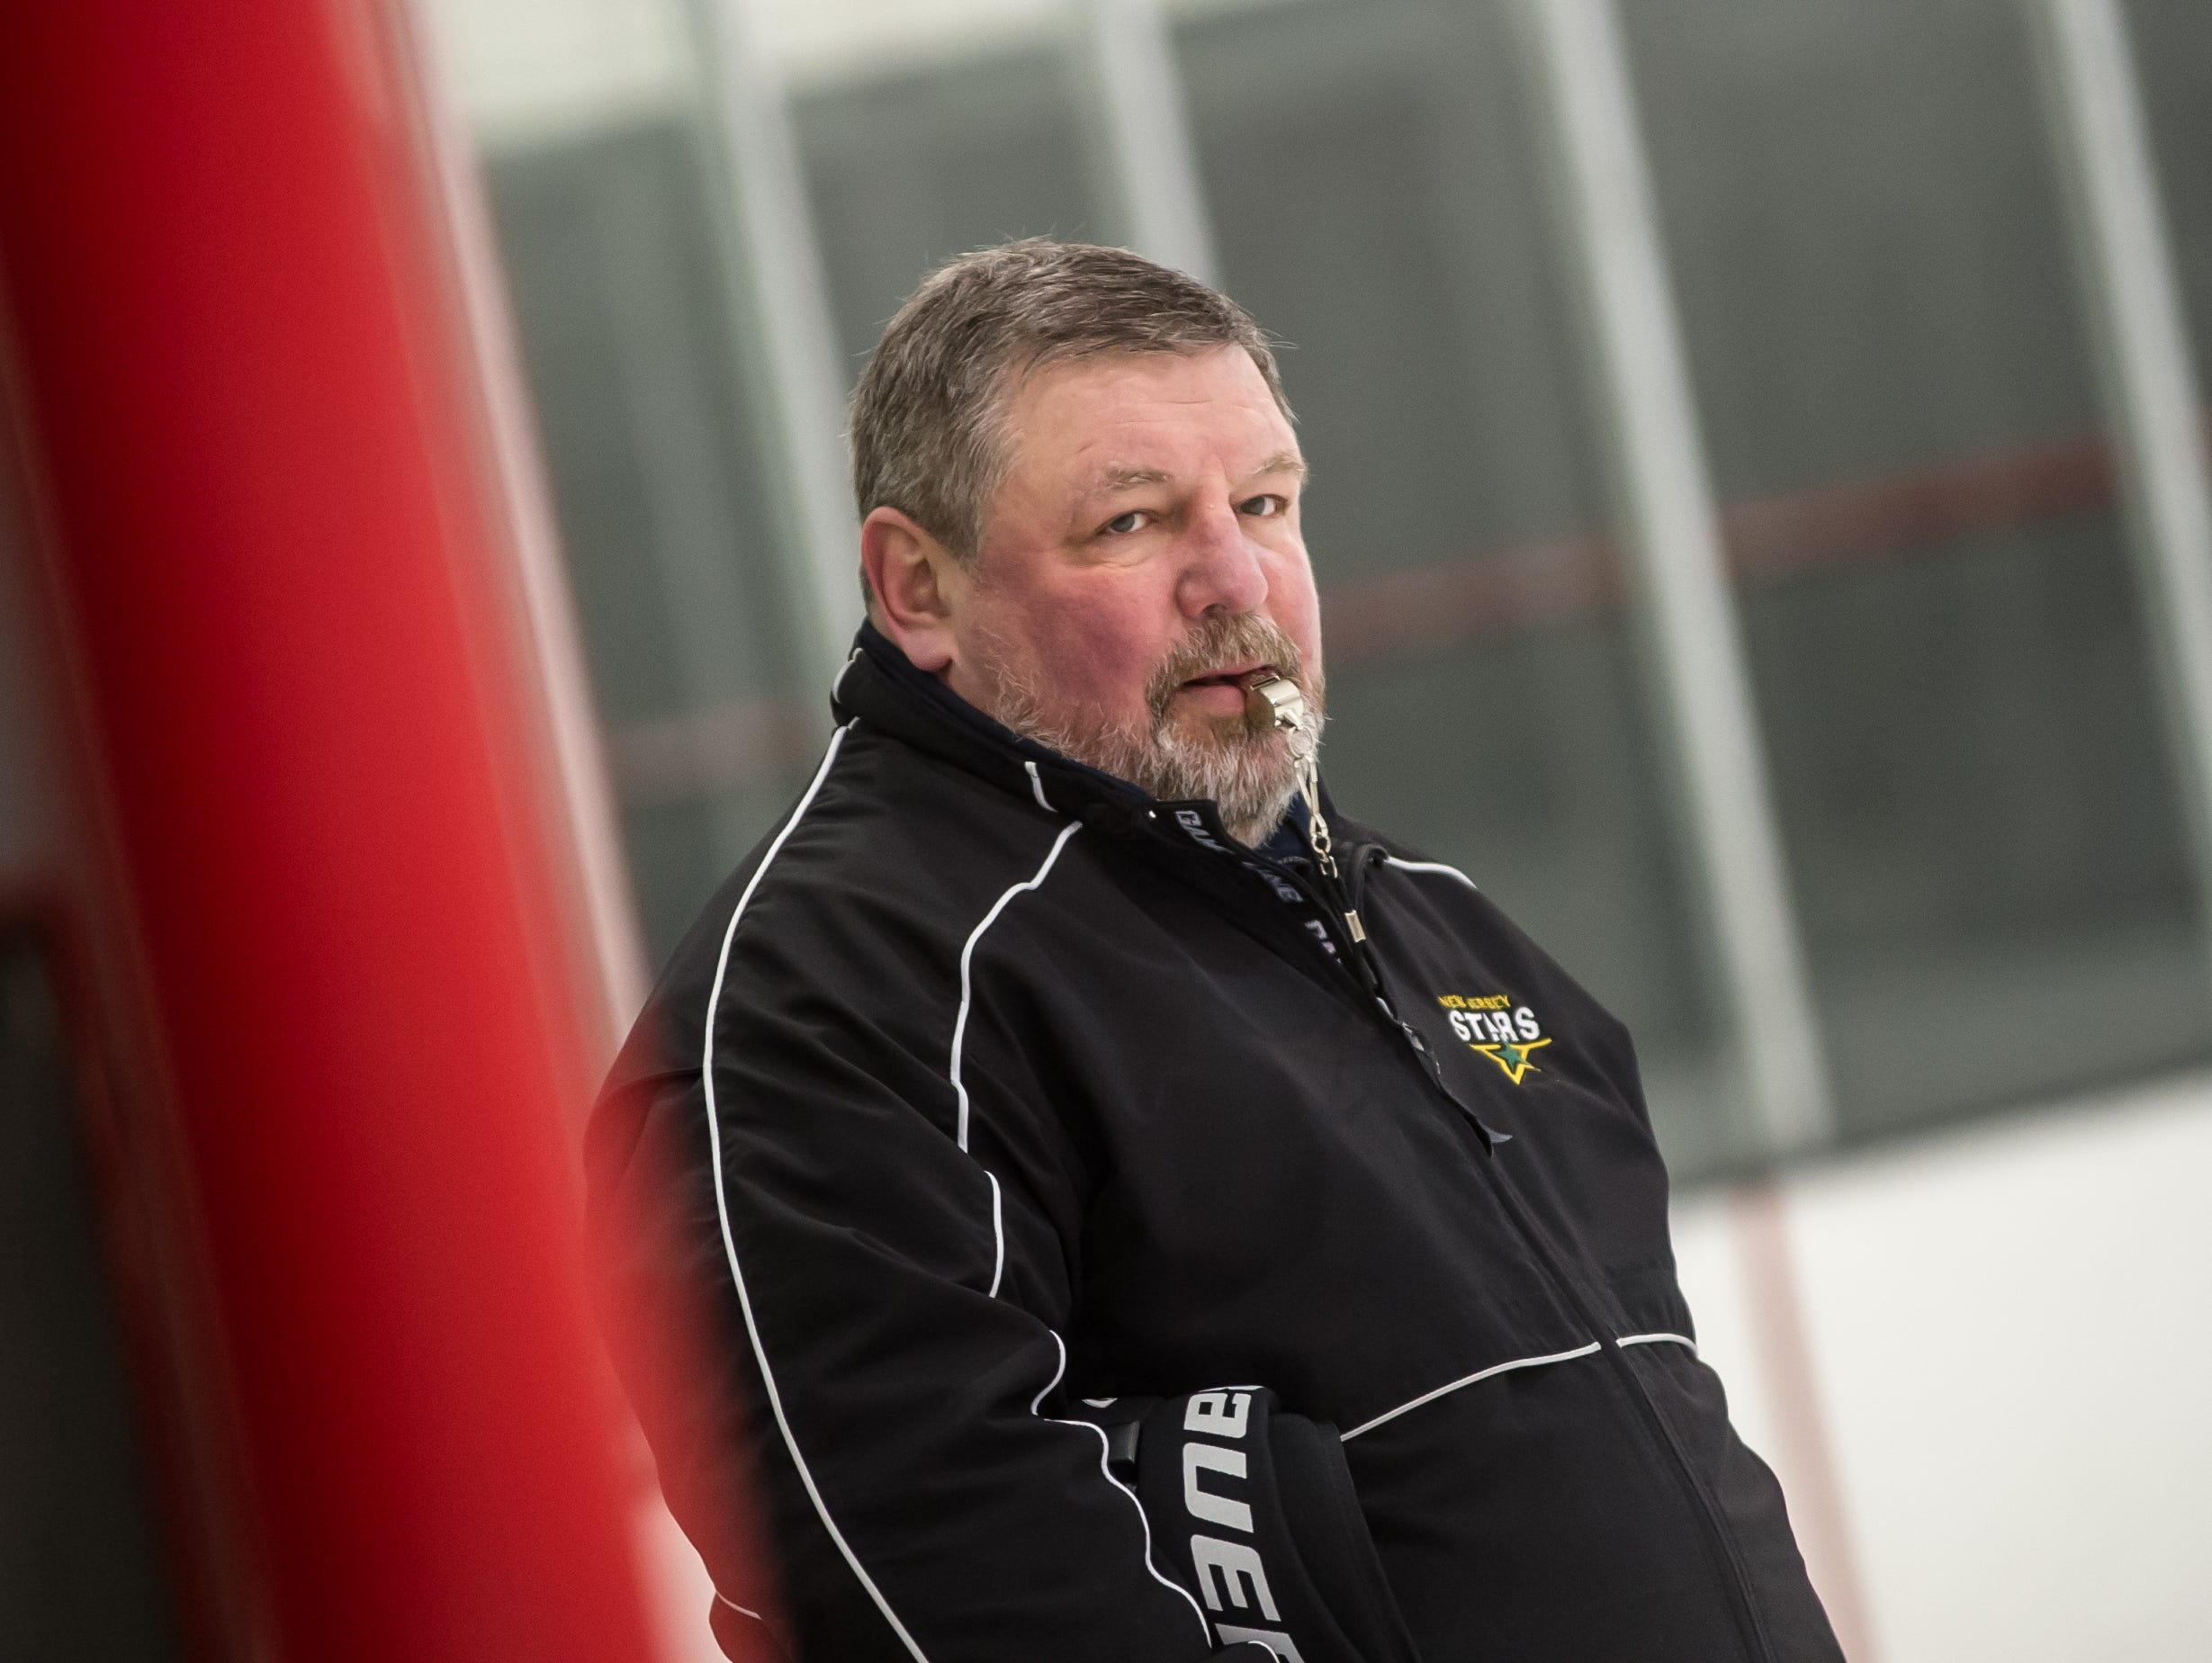 Hockey legend Sergei Starikov, the new head ice hockey coach at South Brunswick High School, coaches the team during a practice at Pro Skate in South Brunswick on Nov. 20.